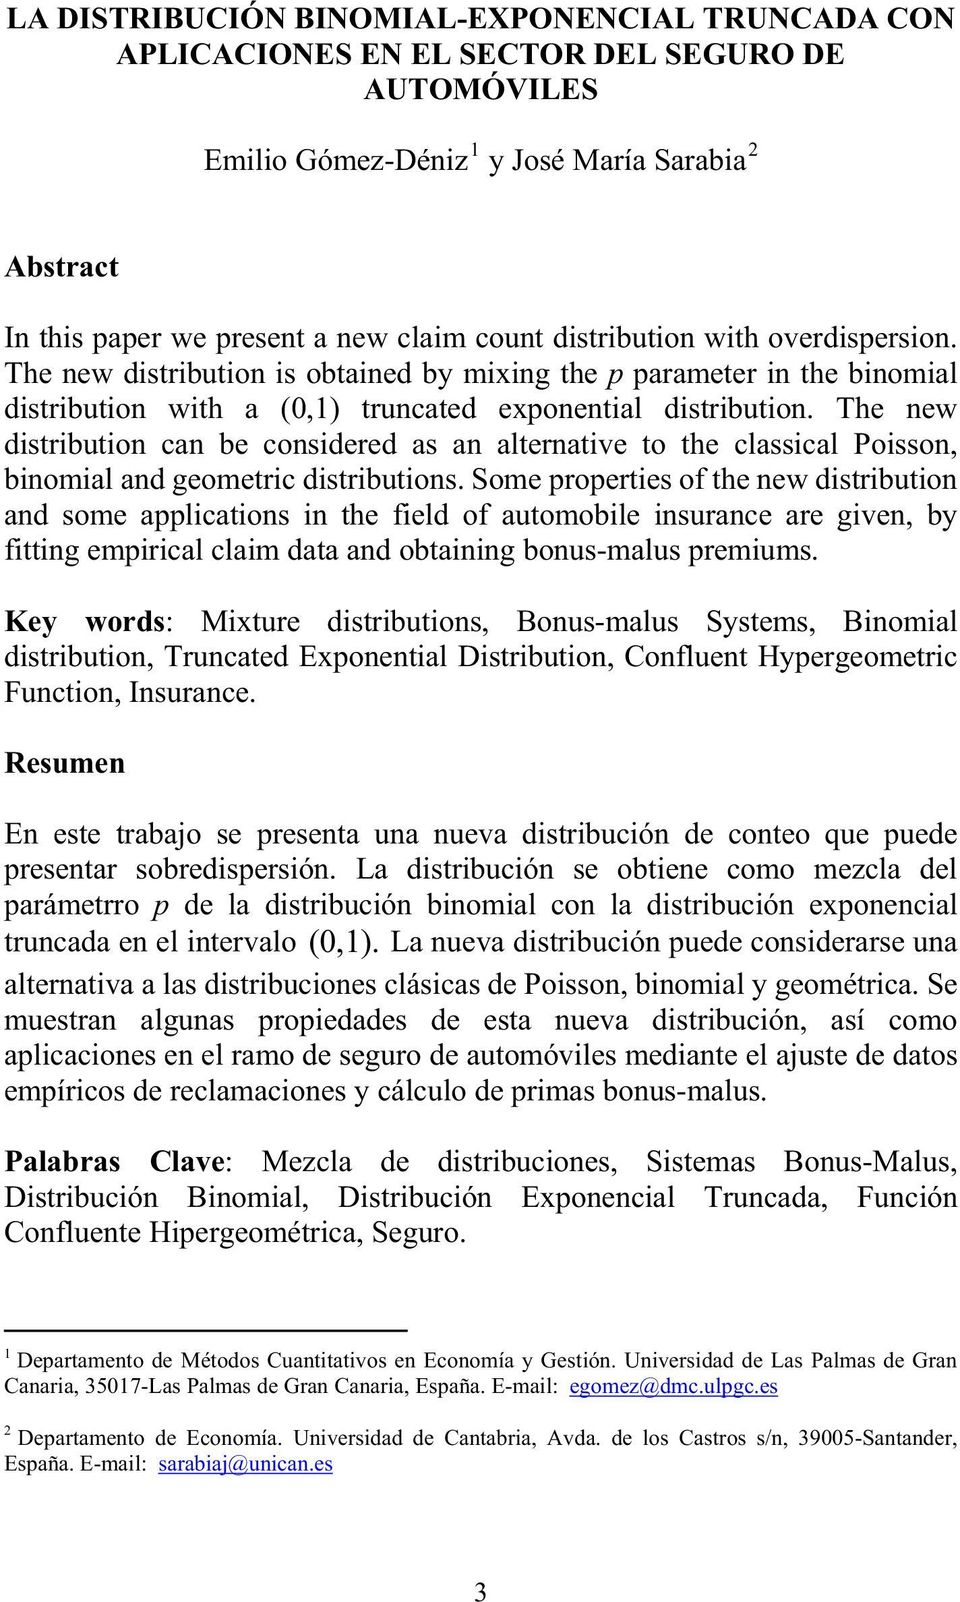 The new disribuion can be considered as an alernaive o he classical Poisson, binomial and geomeric disribuions.